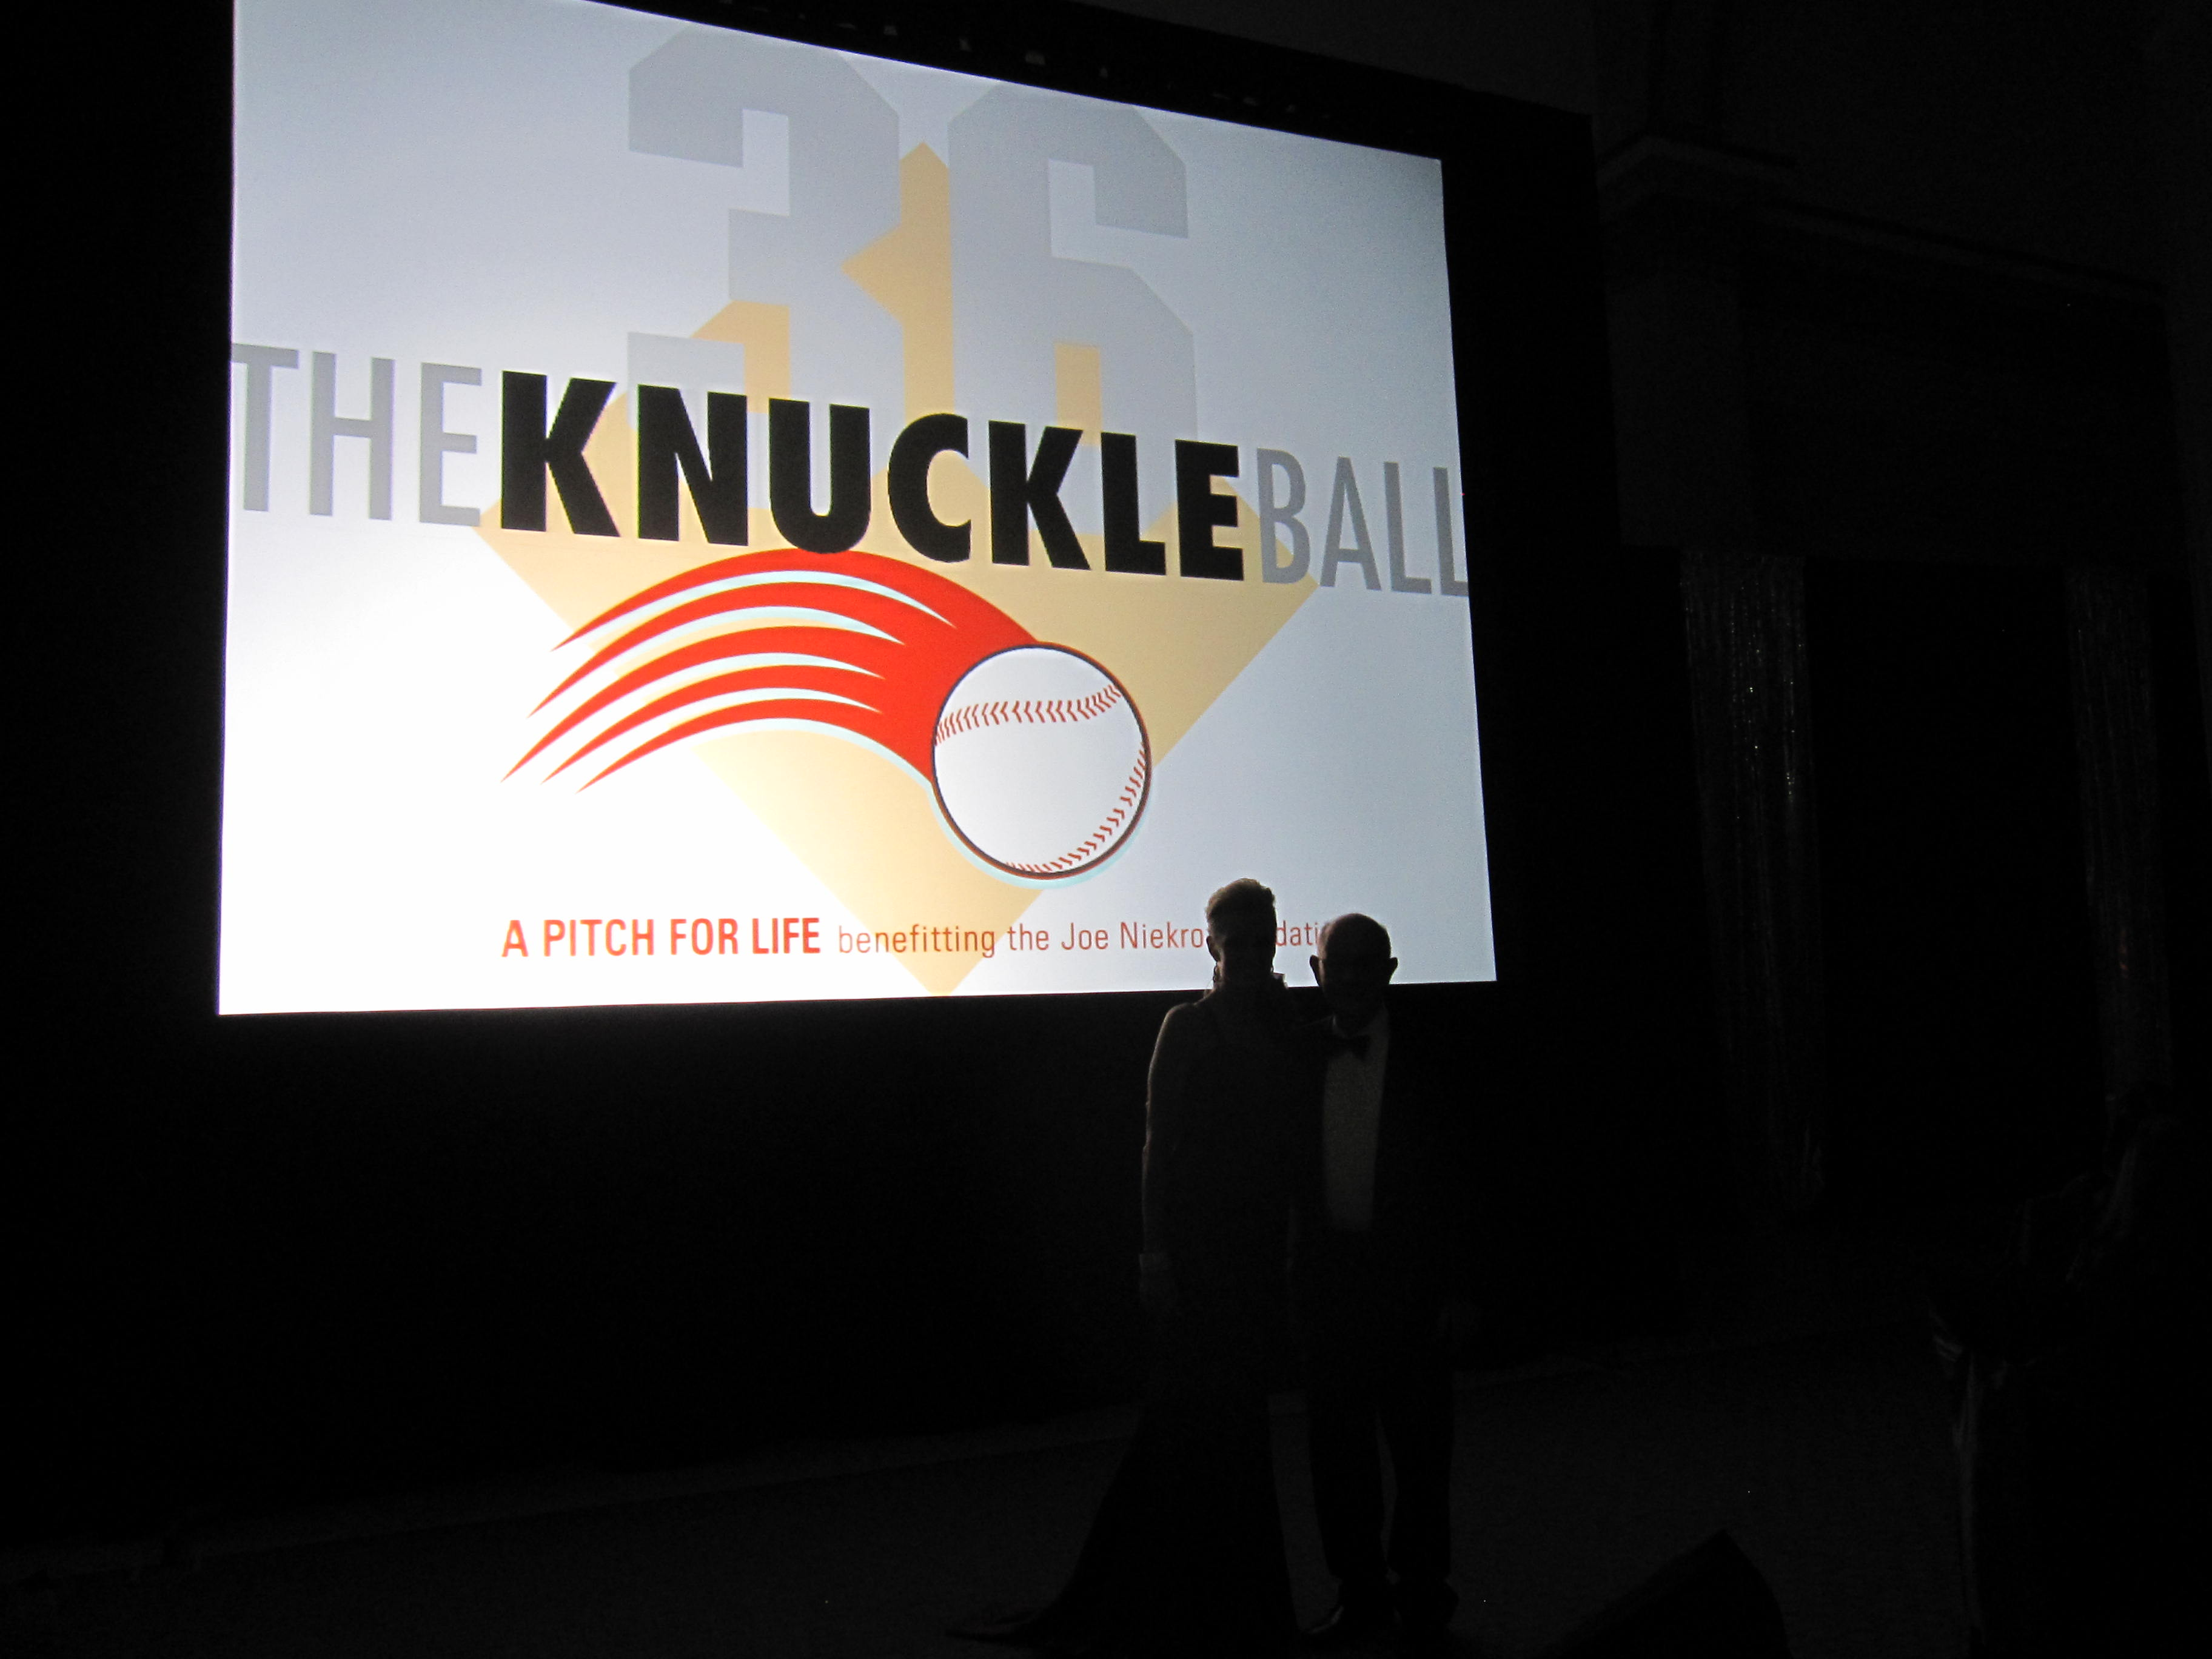 https://www.joeniekrofoundation.com/the-knuckle-ball/knuckle-ball-2010-a-great-event-for-a-great-cause/attachment/img_0380/